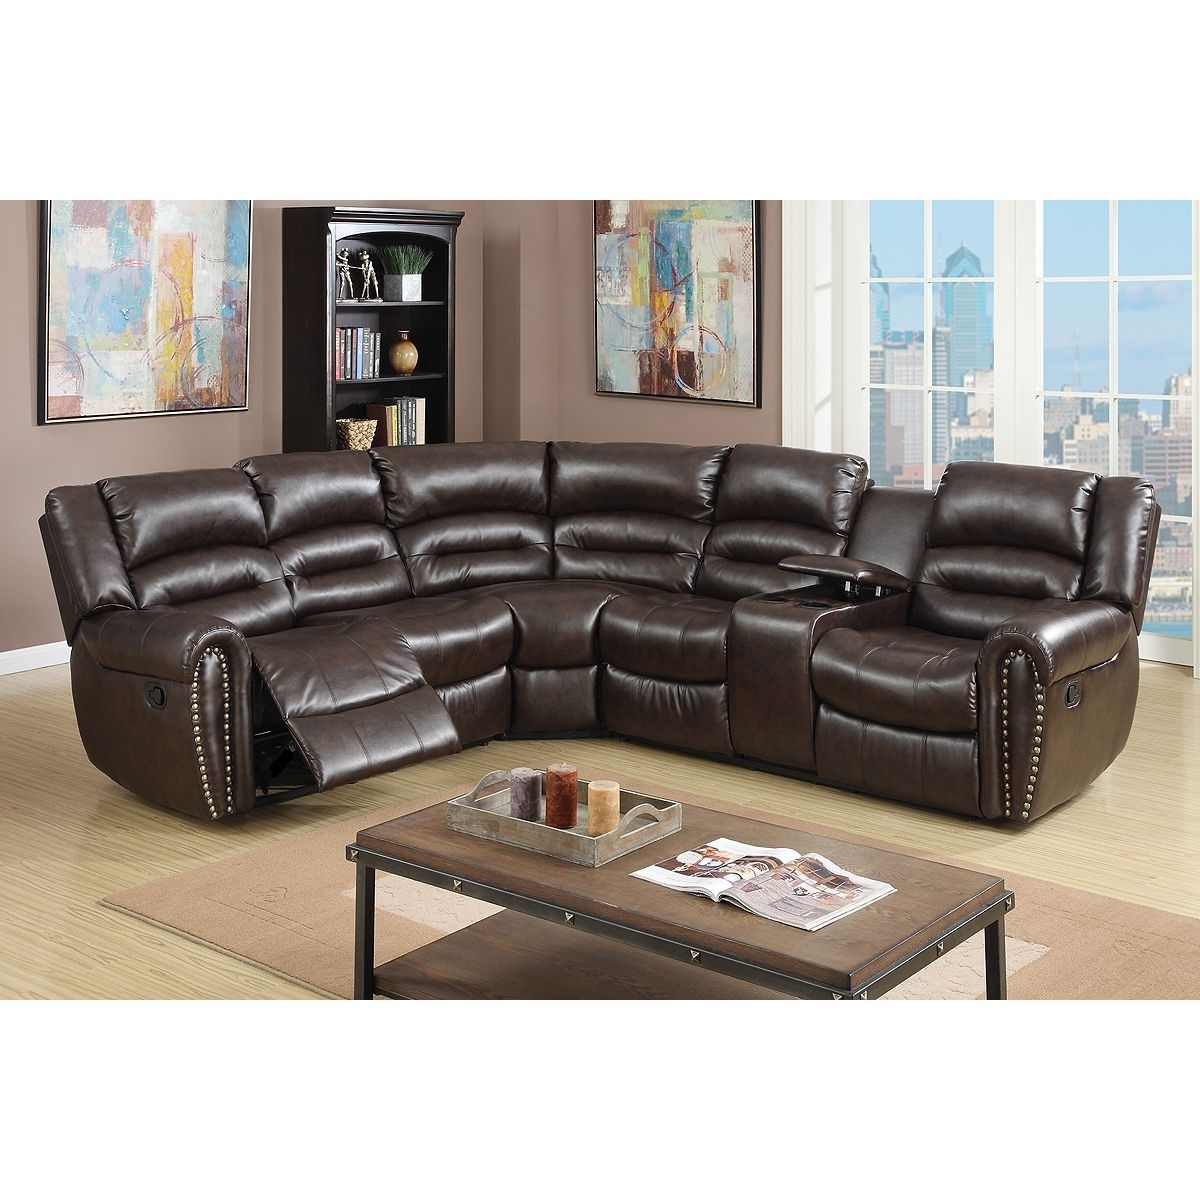 American Eagle Furniture Ek Lb309 Dc Dark Chocolate Sofa C Throughout Tenny Dark Grey 2 Piece Right Facing Chaise Sectionals With 2 Headrest (Image 5 of 25)